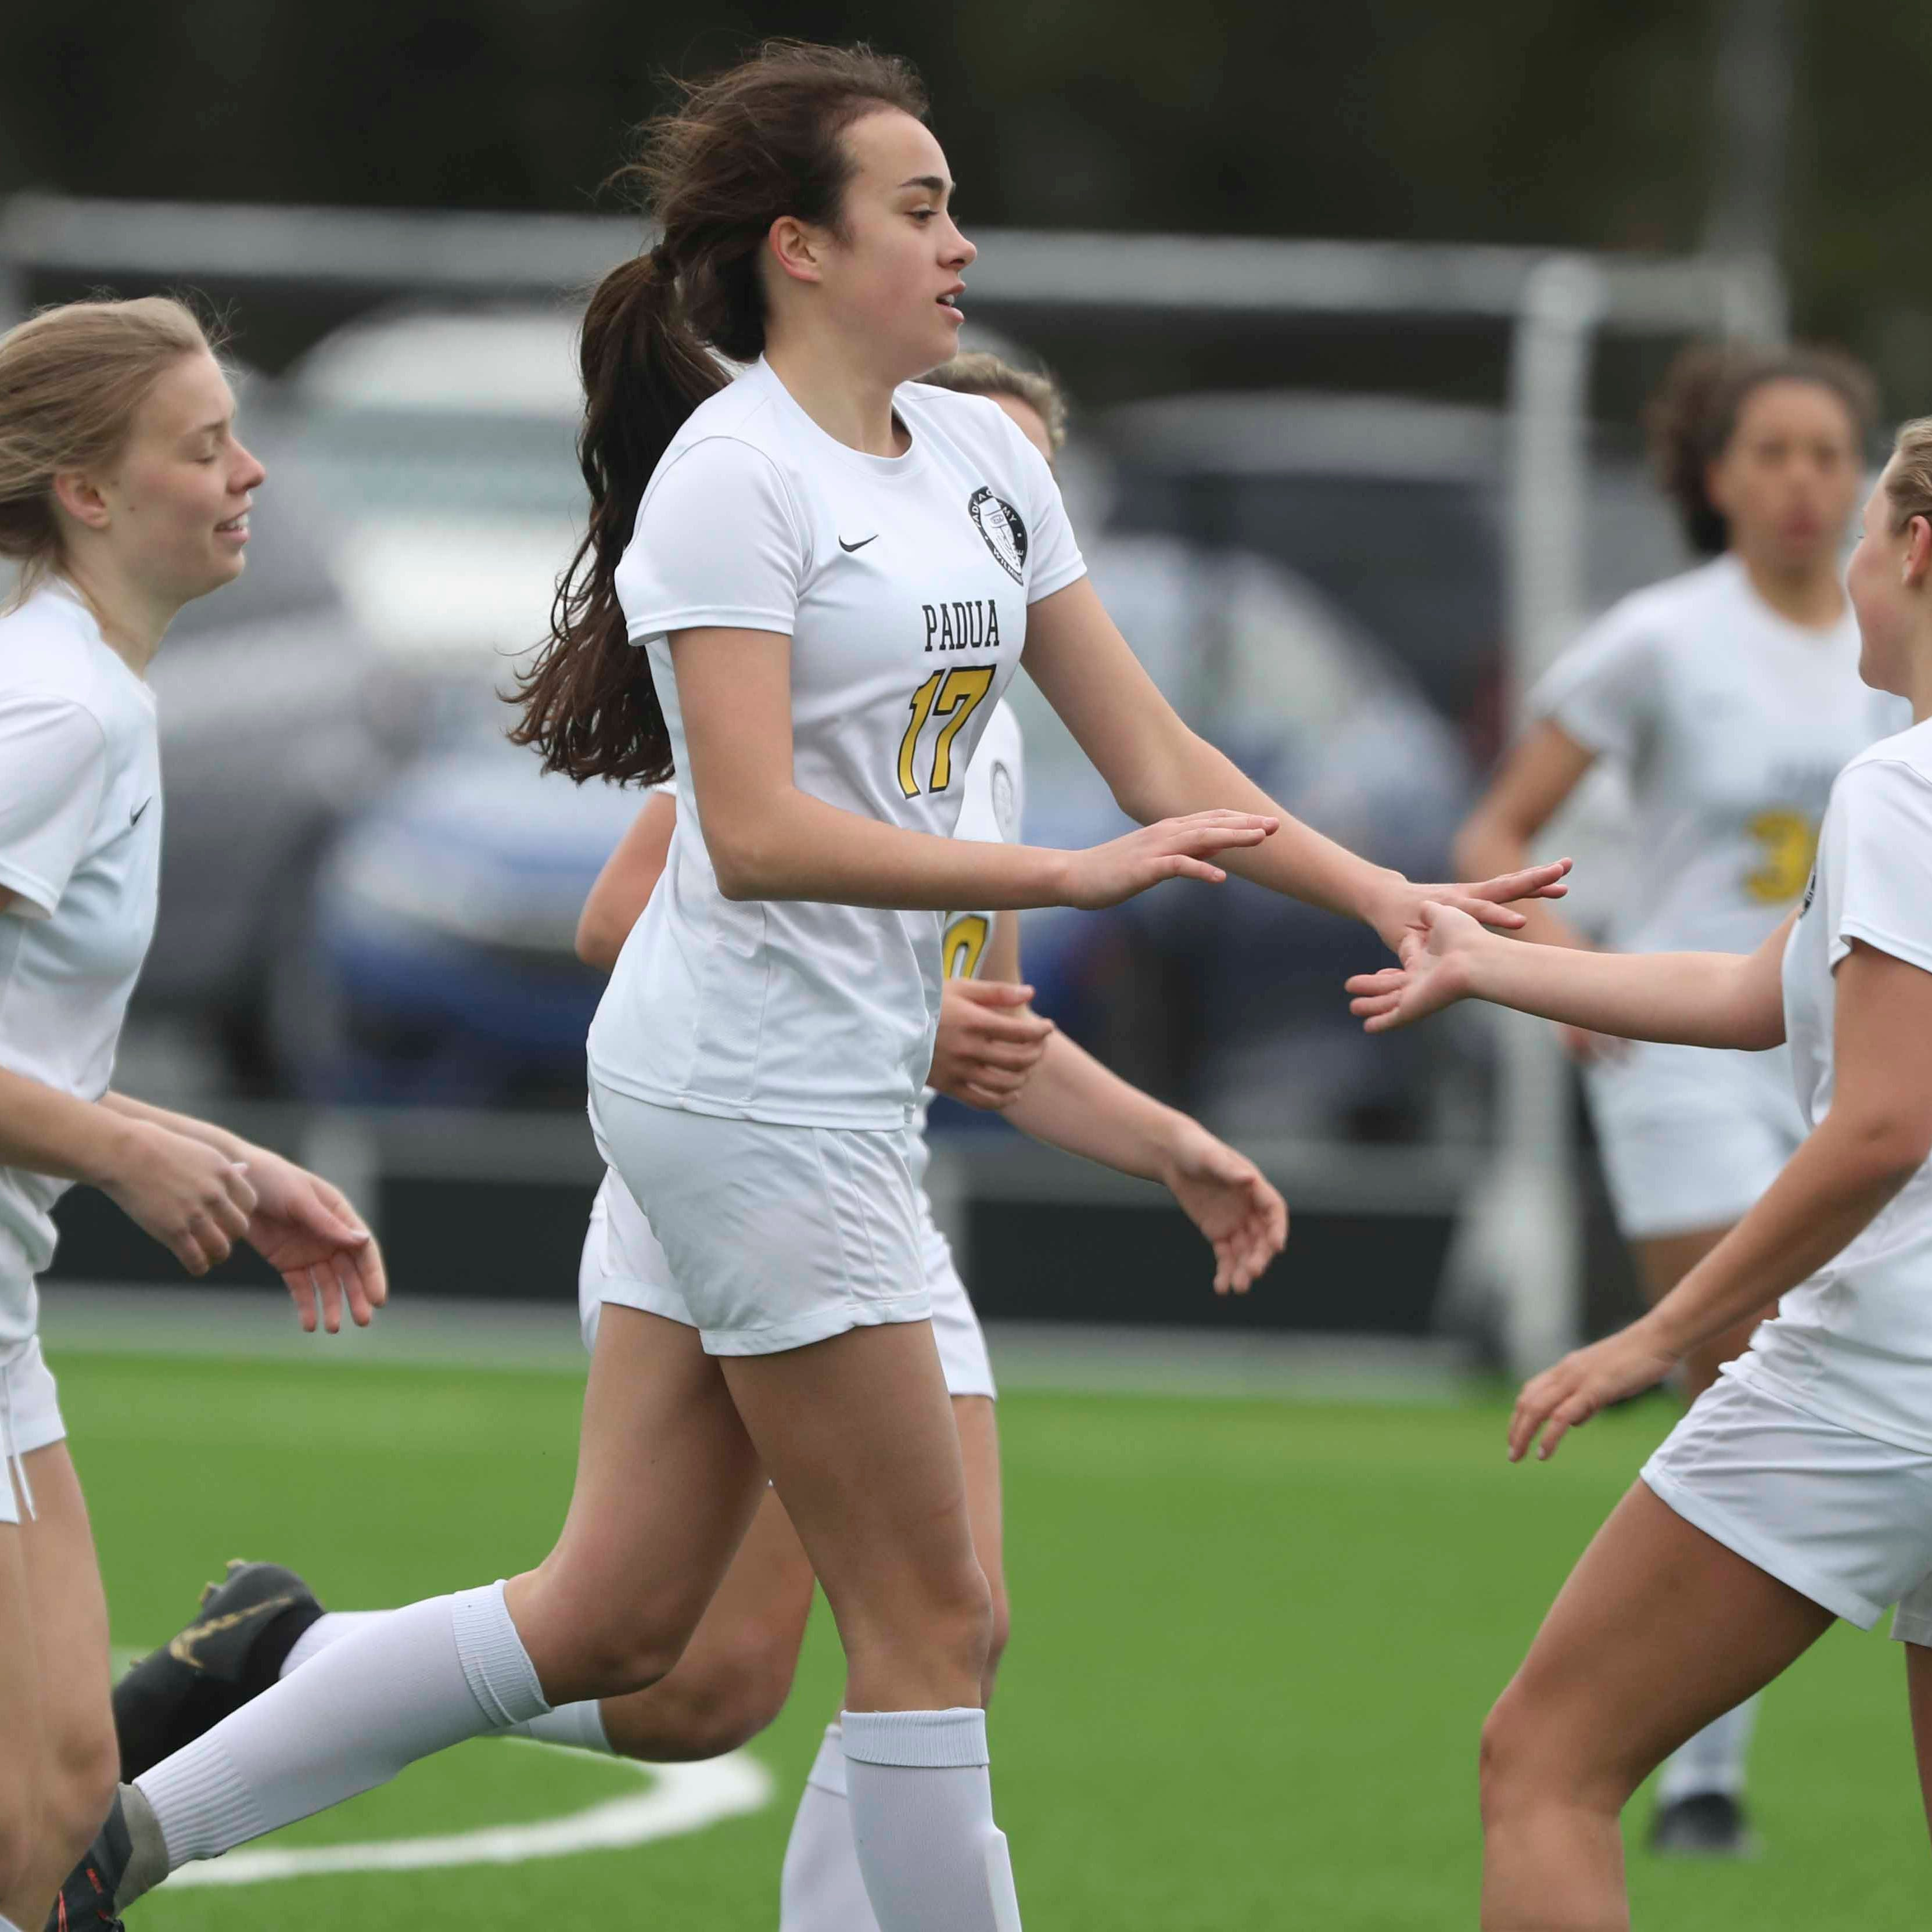 No. 1 Padua outlasts No. 2 Caesar Rodney in early girls soccer showdown